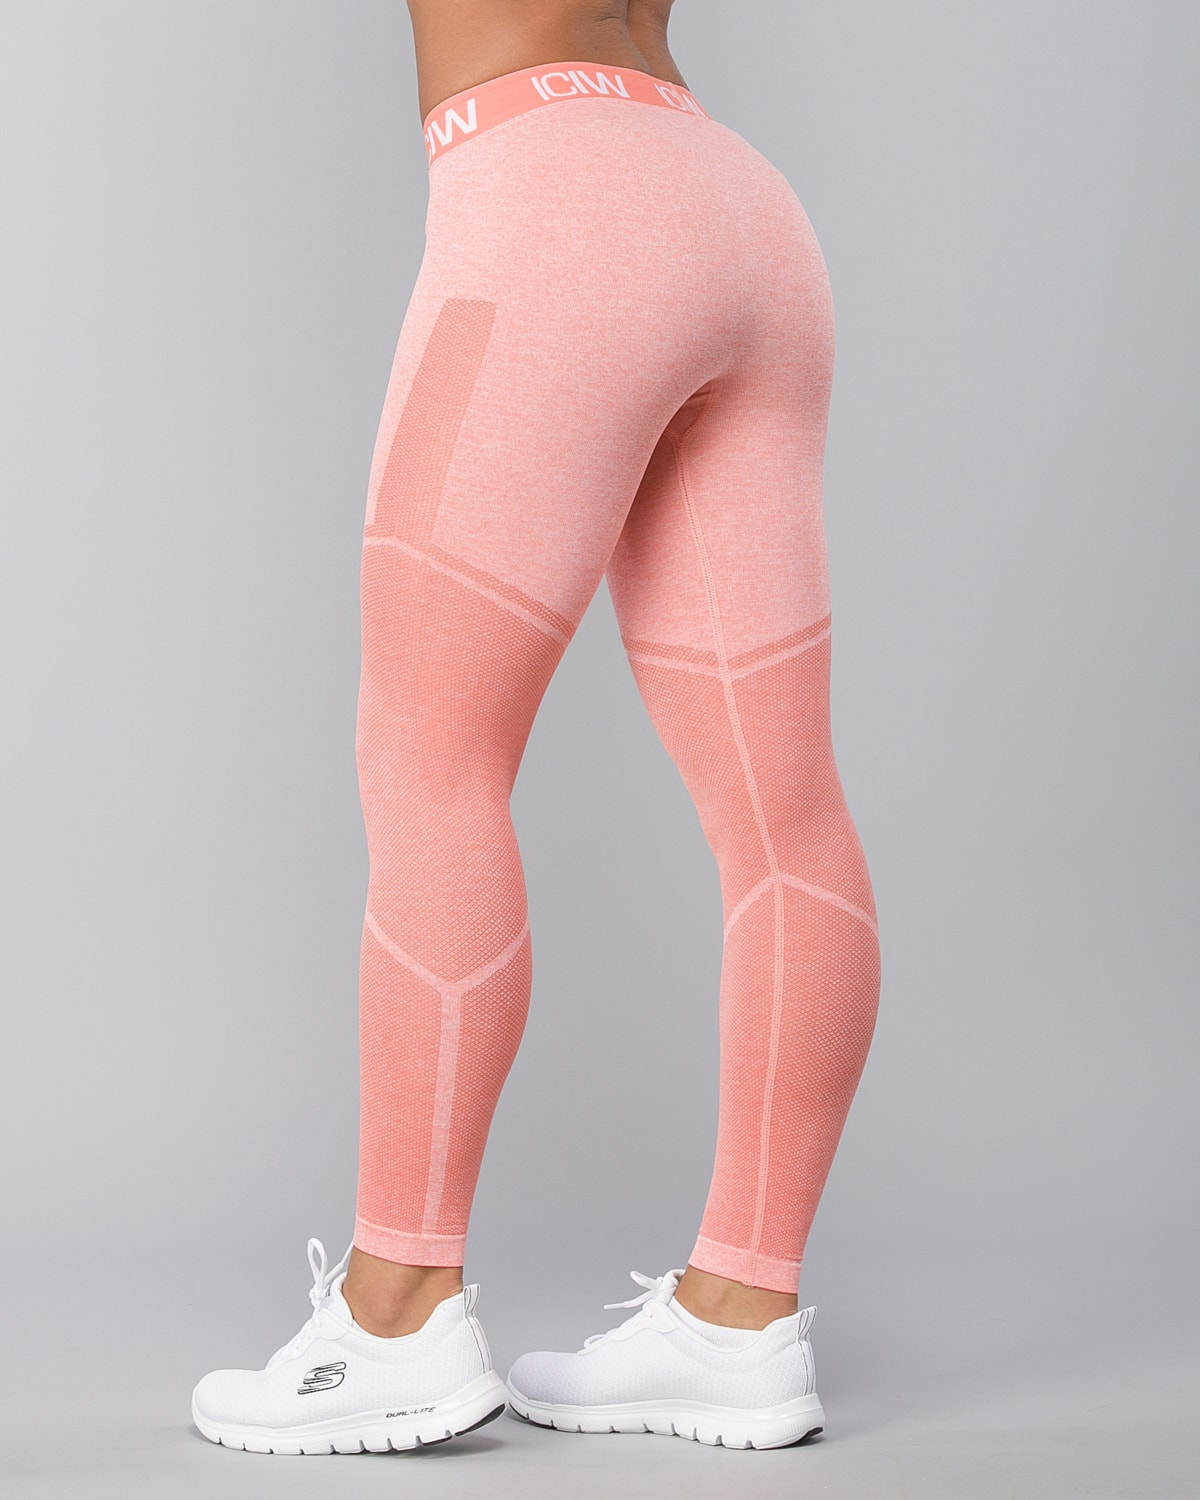 Icaniwill-Seamless Tights–Peach4